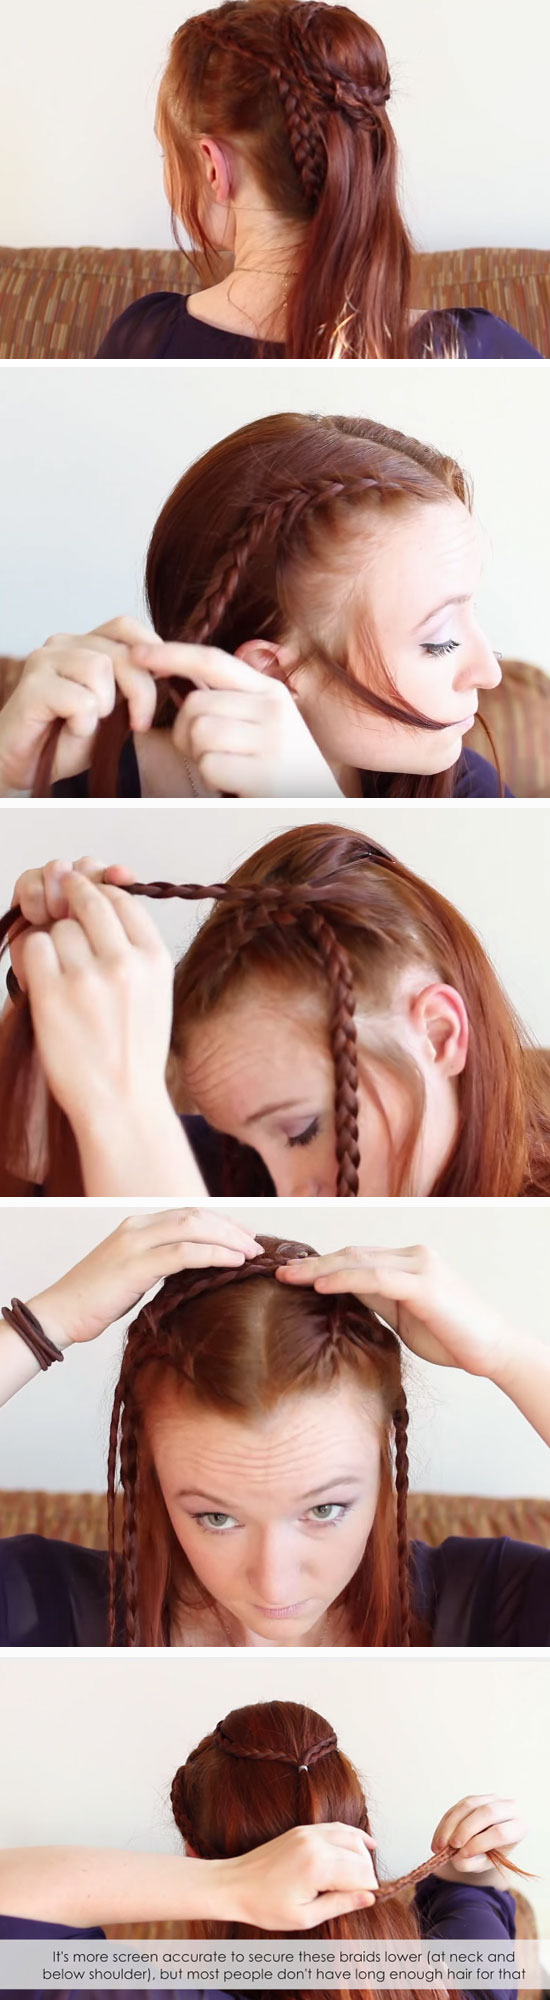 Hairstyles Games Interesting 18 Diy Game Of Thrones Inspired Hairstyles  Medieval Princess